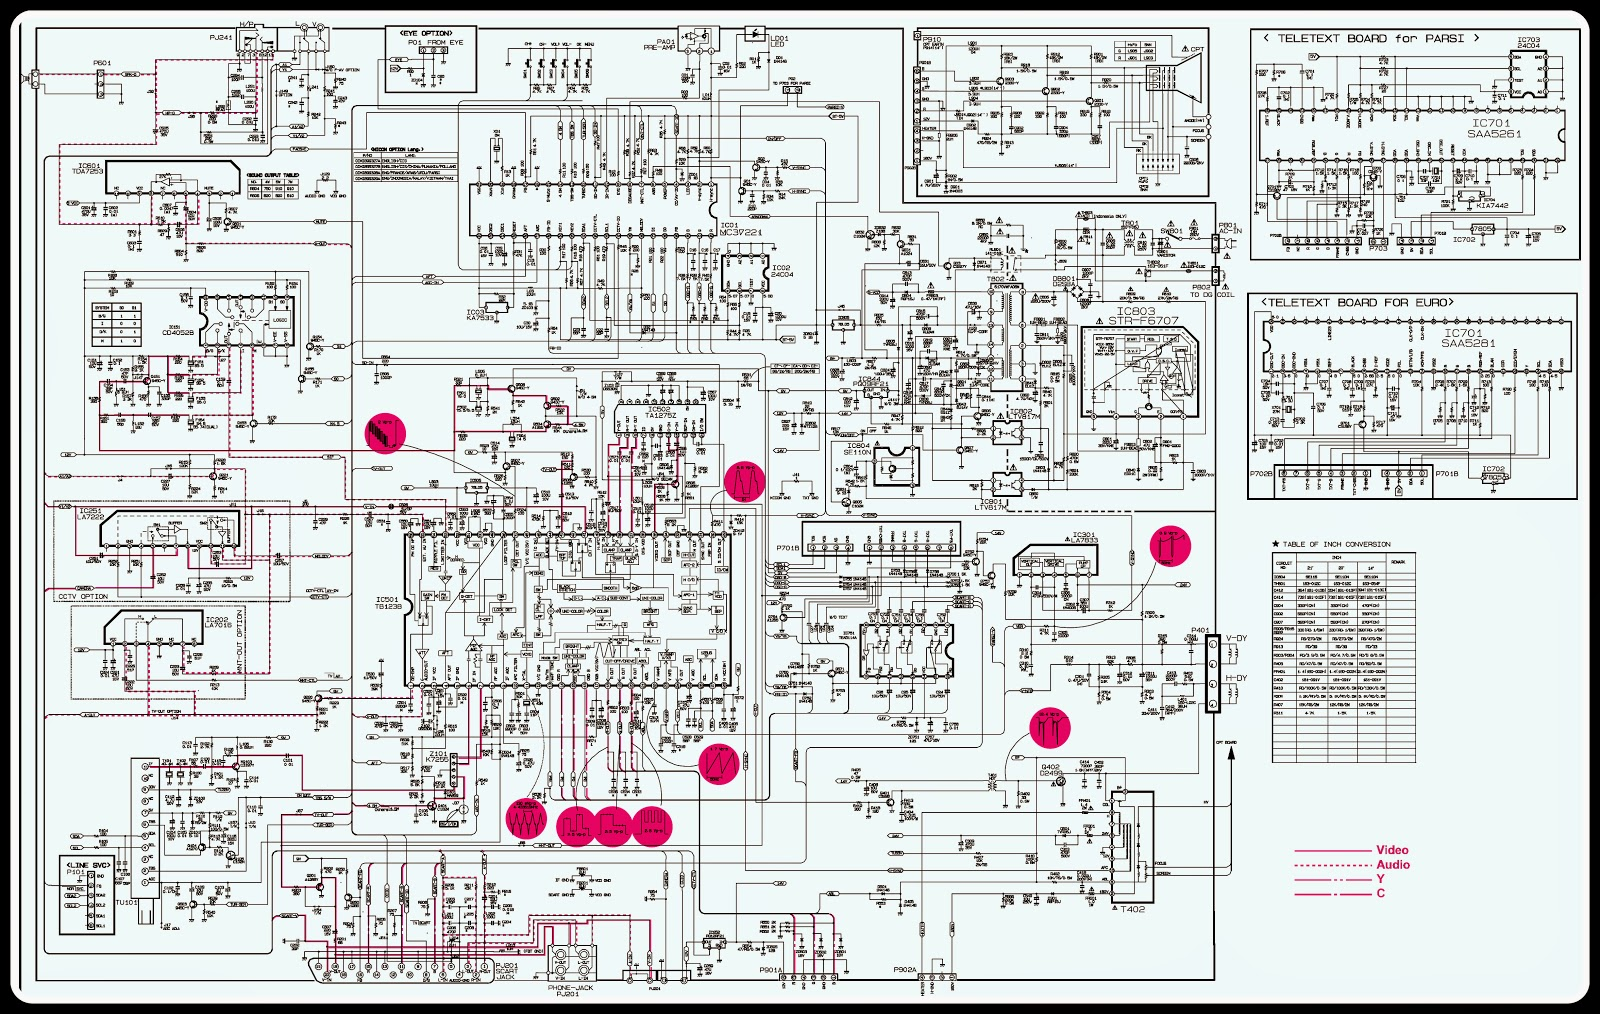 medium resolution of lg tv schematic diagram furthermore led tv schematic diagram on tv besides samsung tv service manual on lg tv schematic diagram